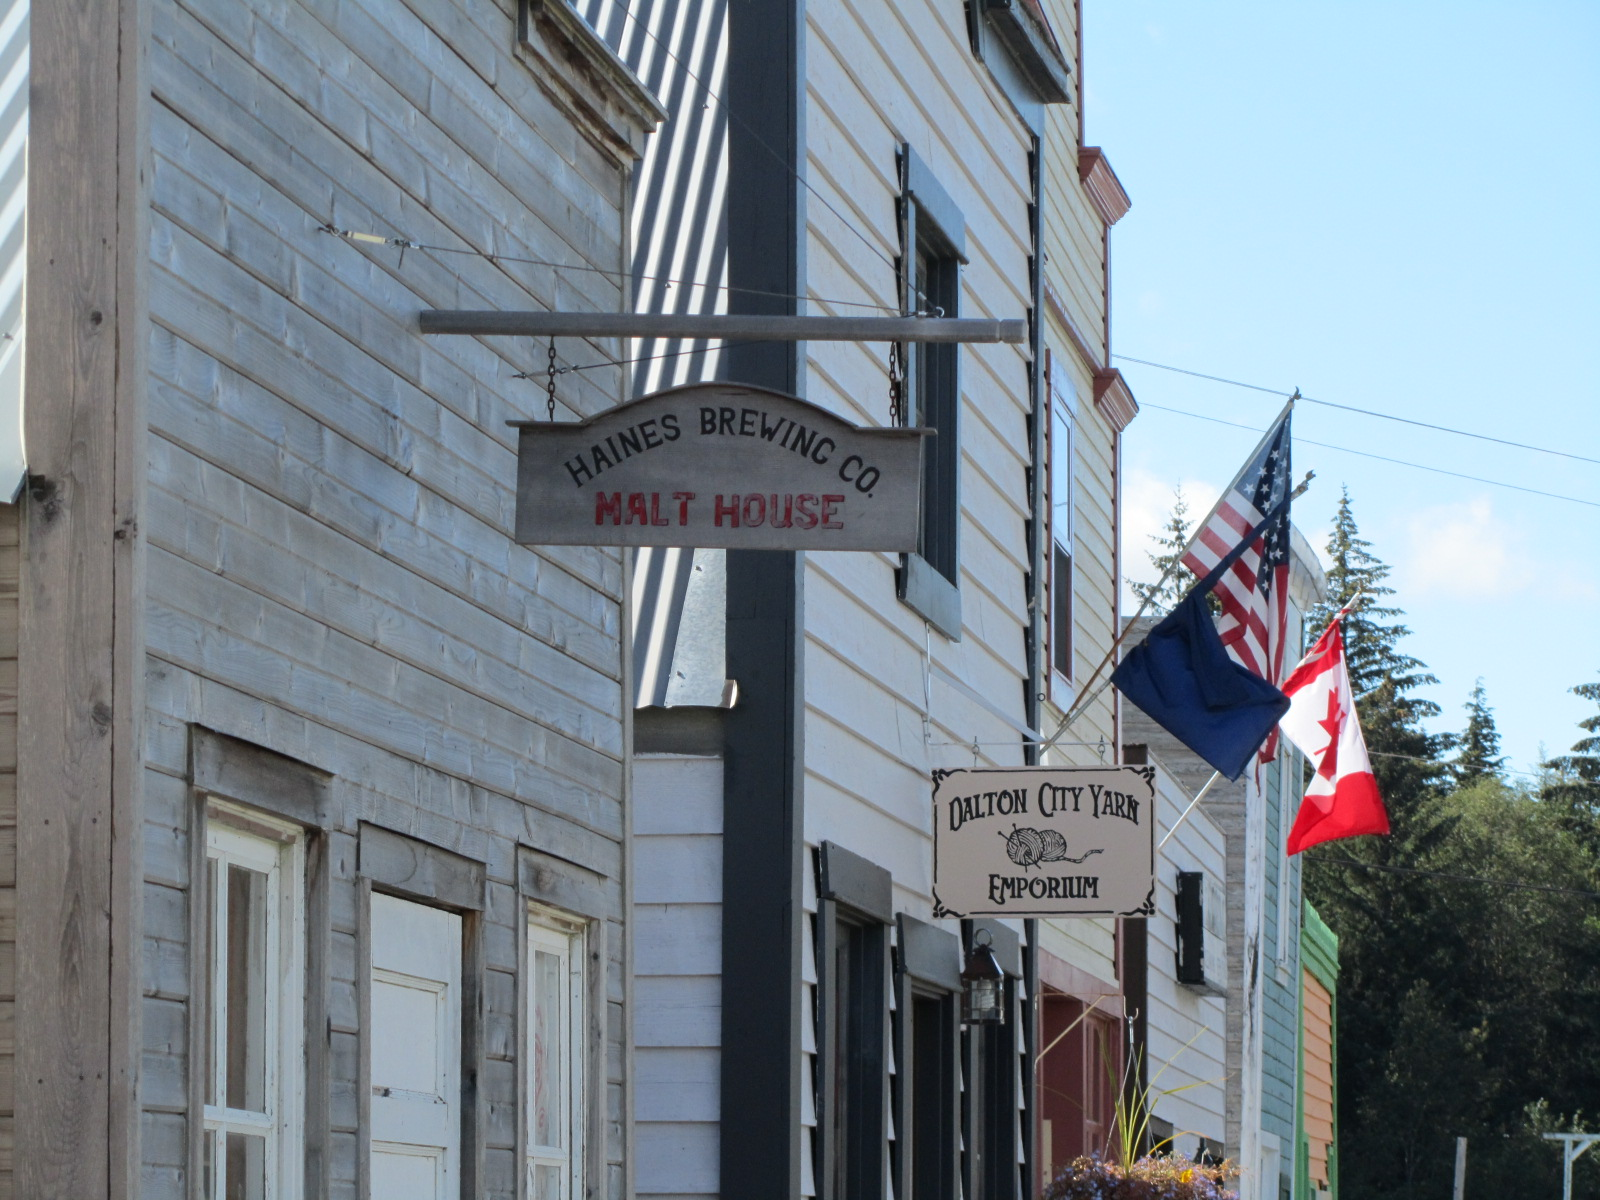 Pine Valley Museum Halfway, Dalton City AK aka (white fang movie set) home of Haines Brewing ...